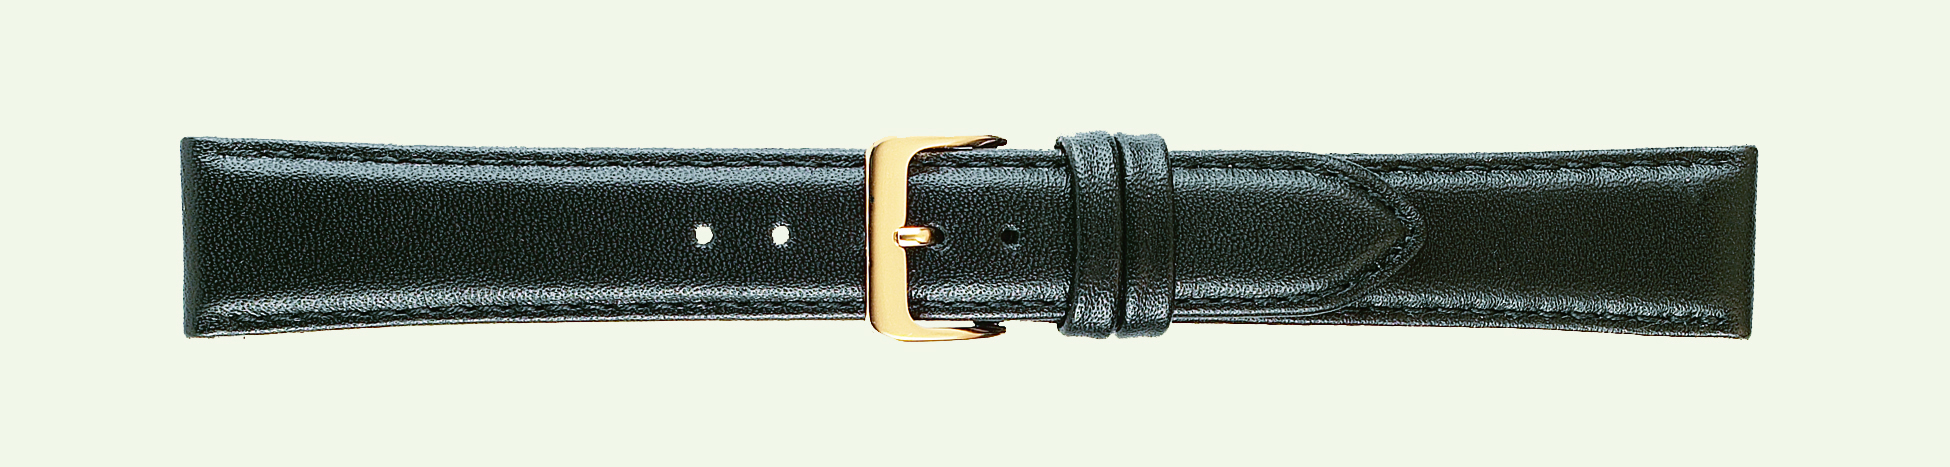 Haldey Roma 24mm Leather Band Black Classic Calf-0